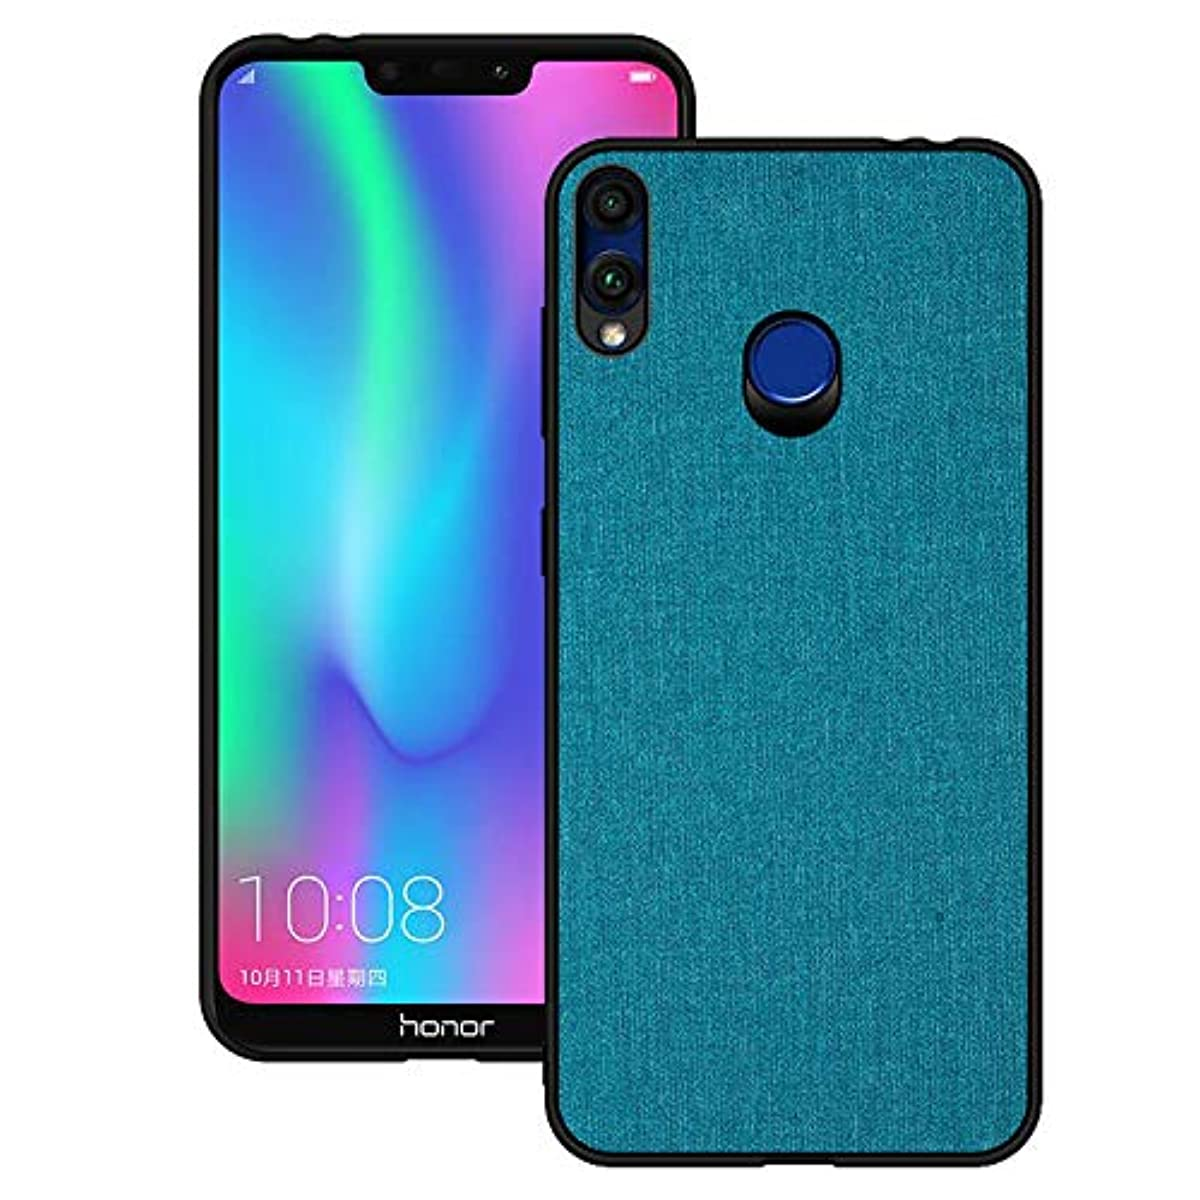 Huawei Y9 2019 Case, CJ Sunshine Huawei Y9 2019 Mobile Phone Shell with Fabric PU Back Cover All-Inclusive Shatter-Resistant Hard Shell Silicone Soft Edge Case for Huawei Y9 2019(Navy)